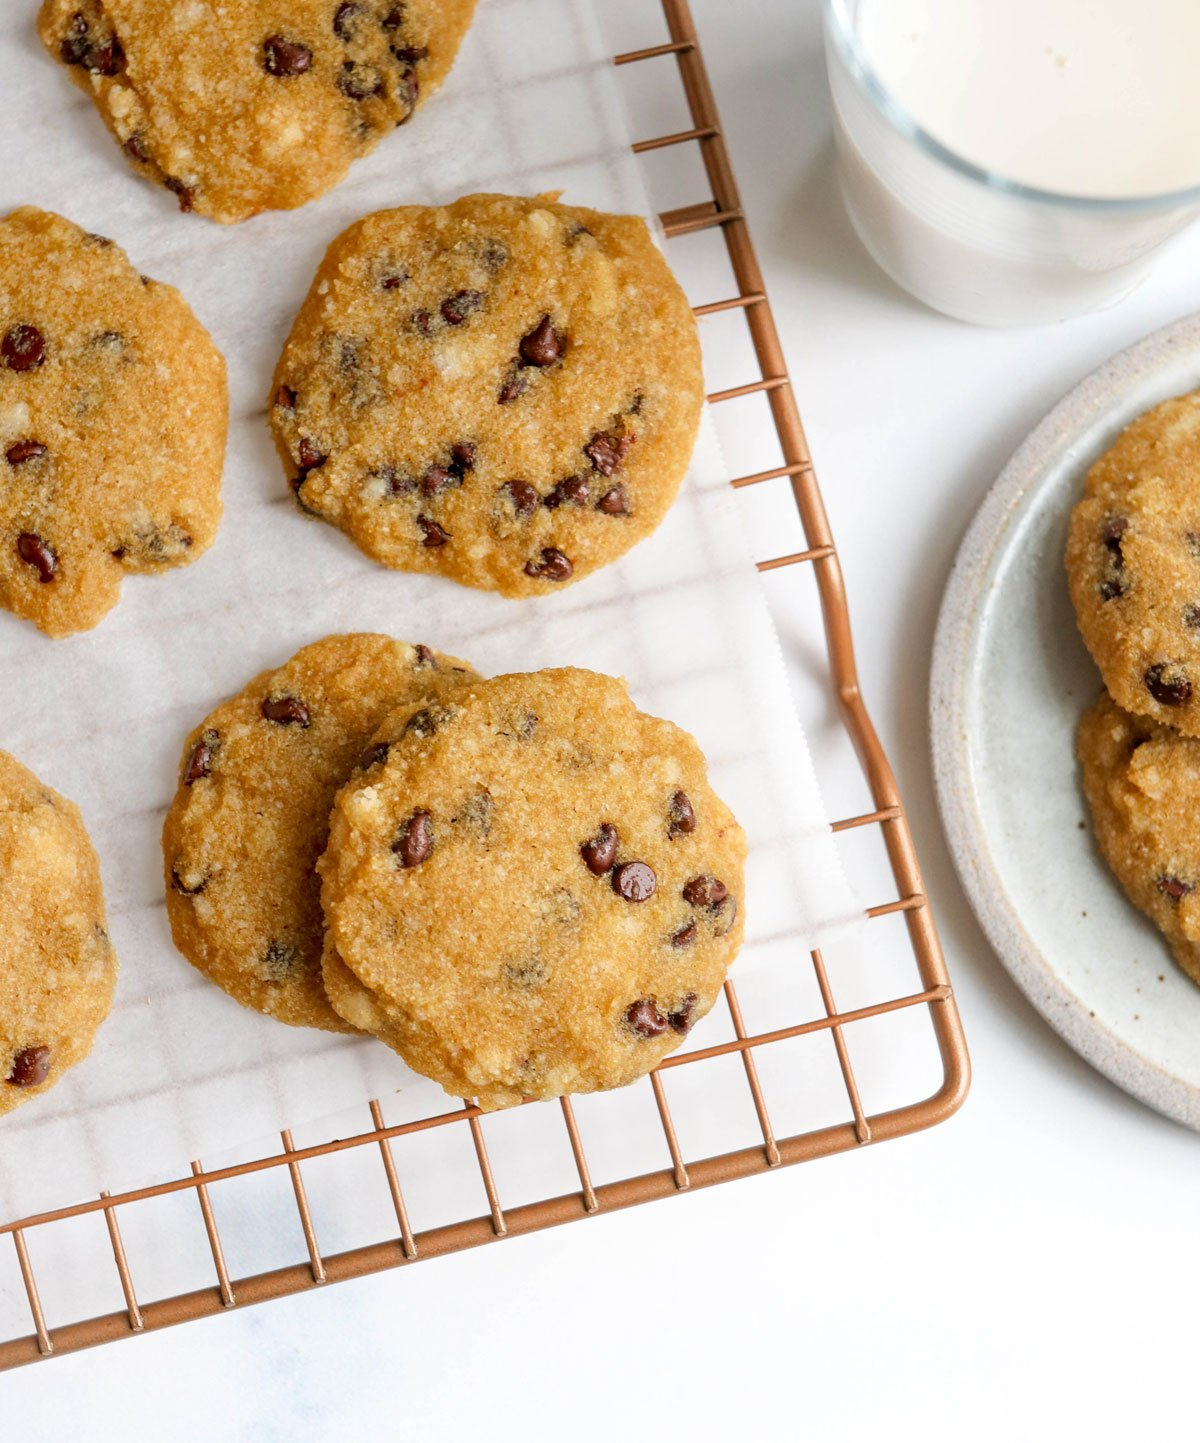 coconut flour chocolate chip cookies on wire rack